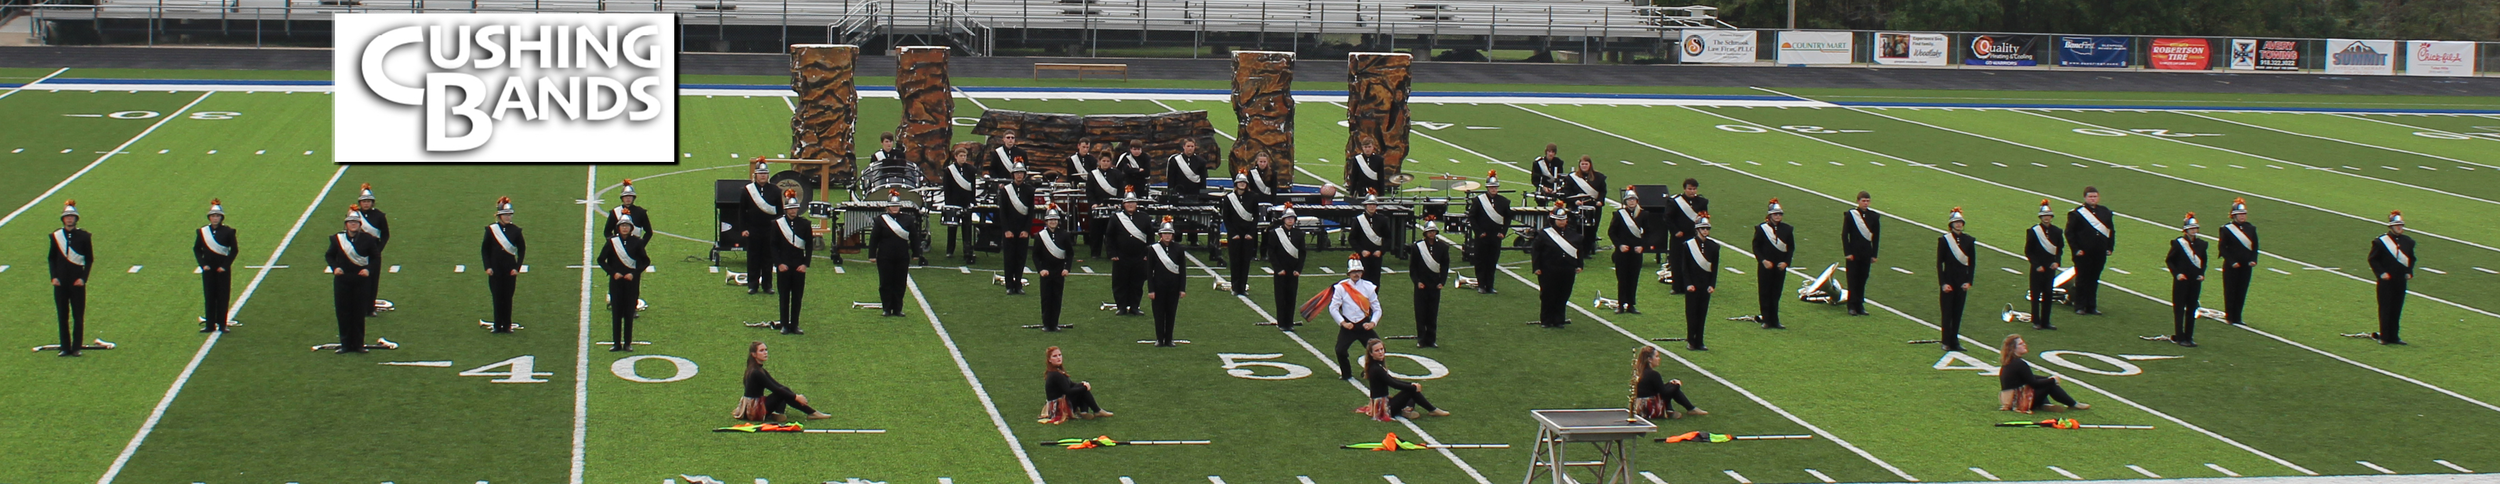 Cushing High School Marching Band - Band Of Demons Contest Beggs OK